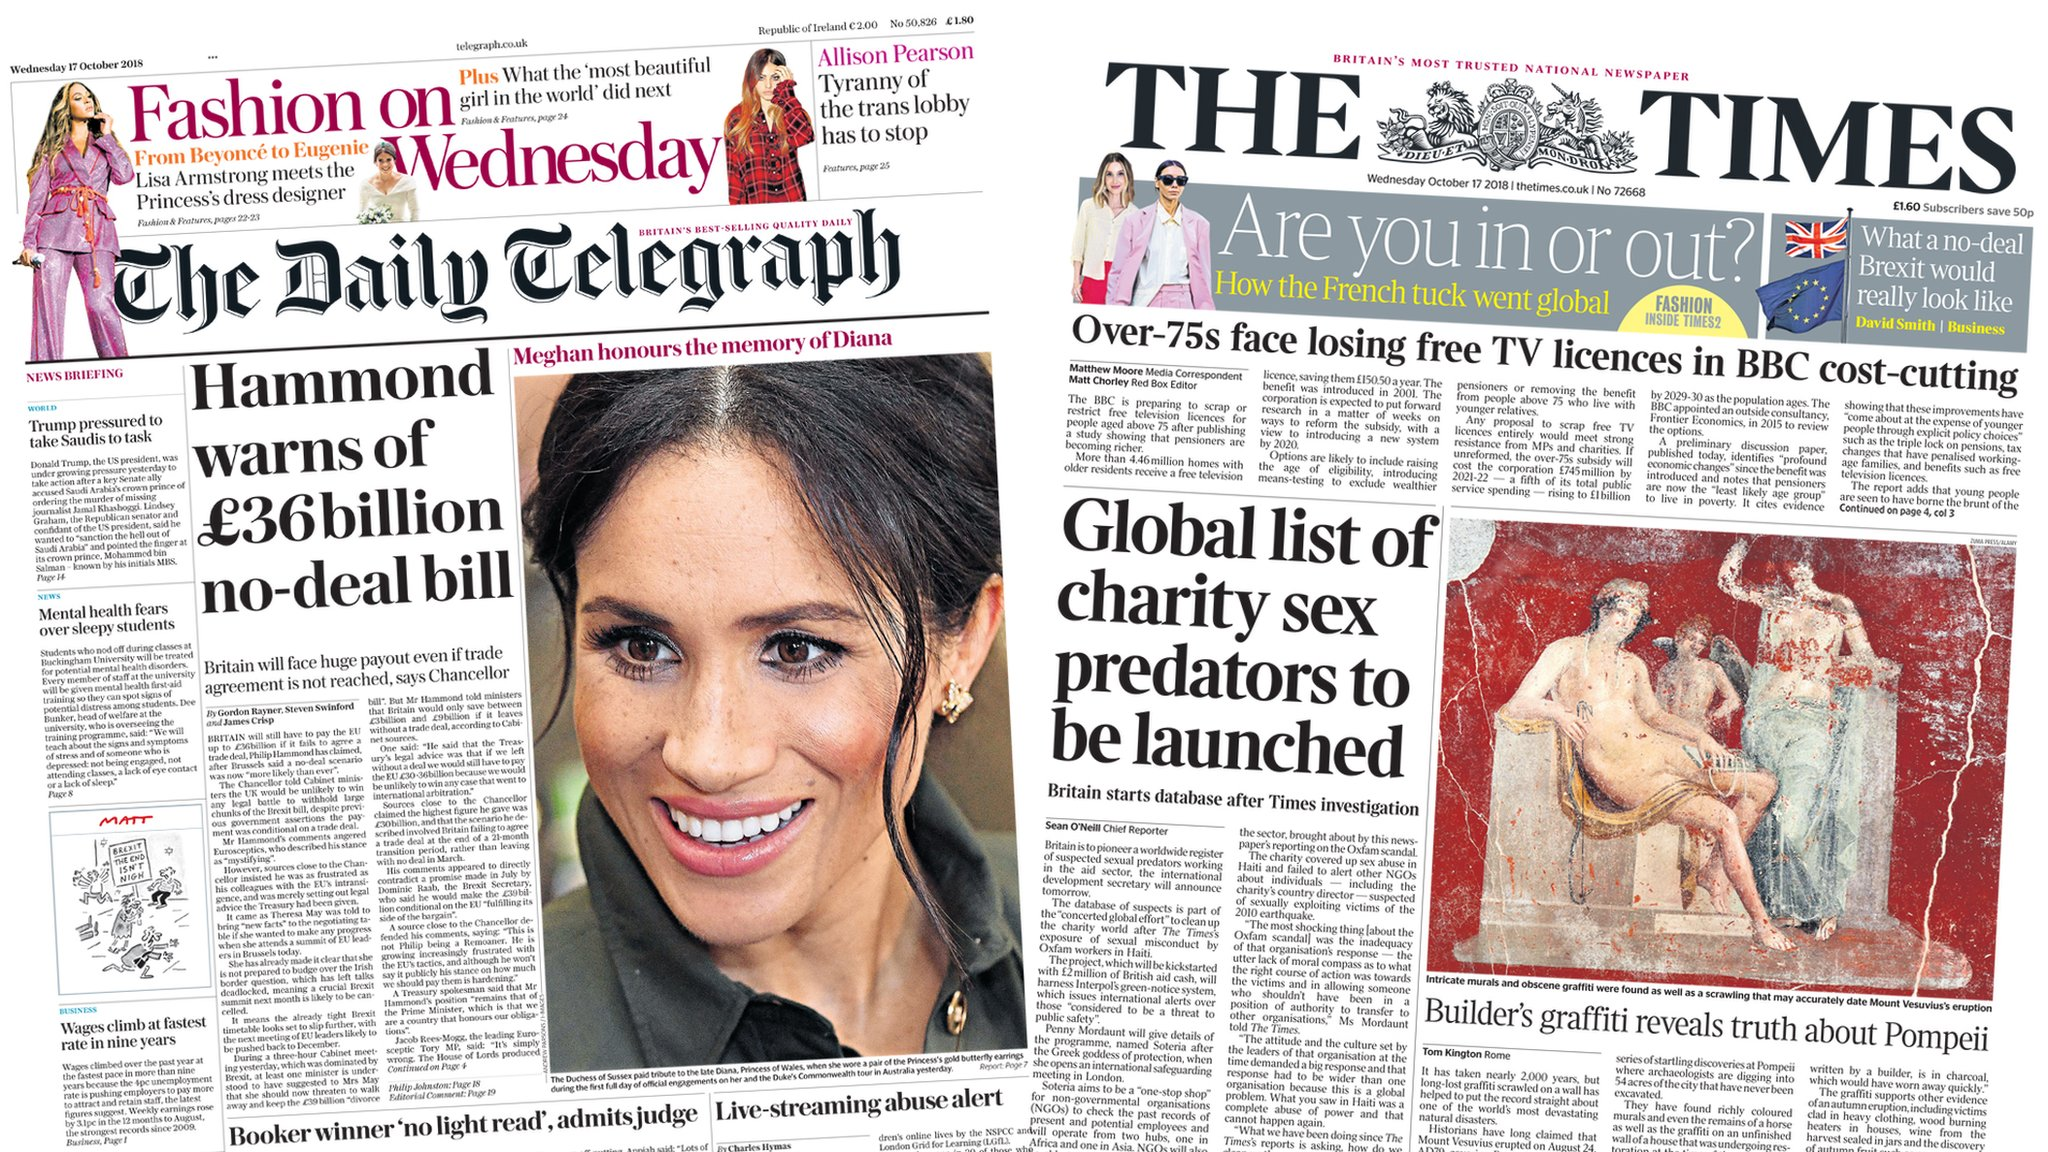 Newspaper headlines: 'No-deal Brexit could lead to £36bn bill'